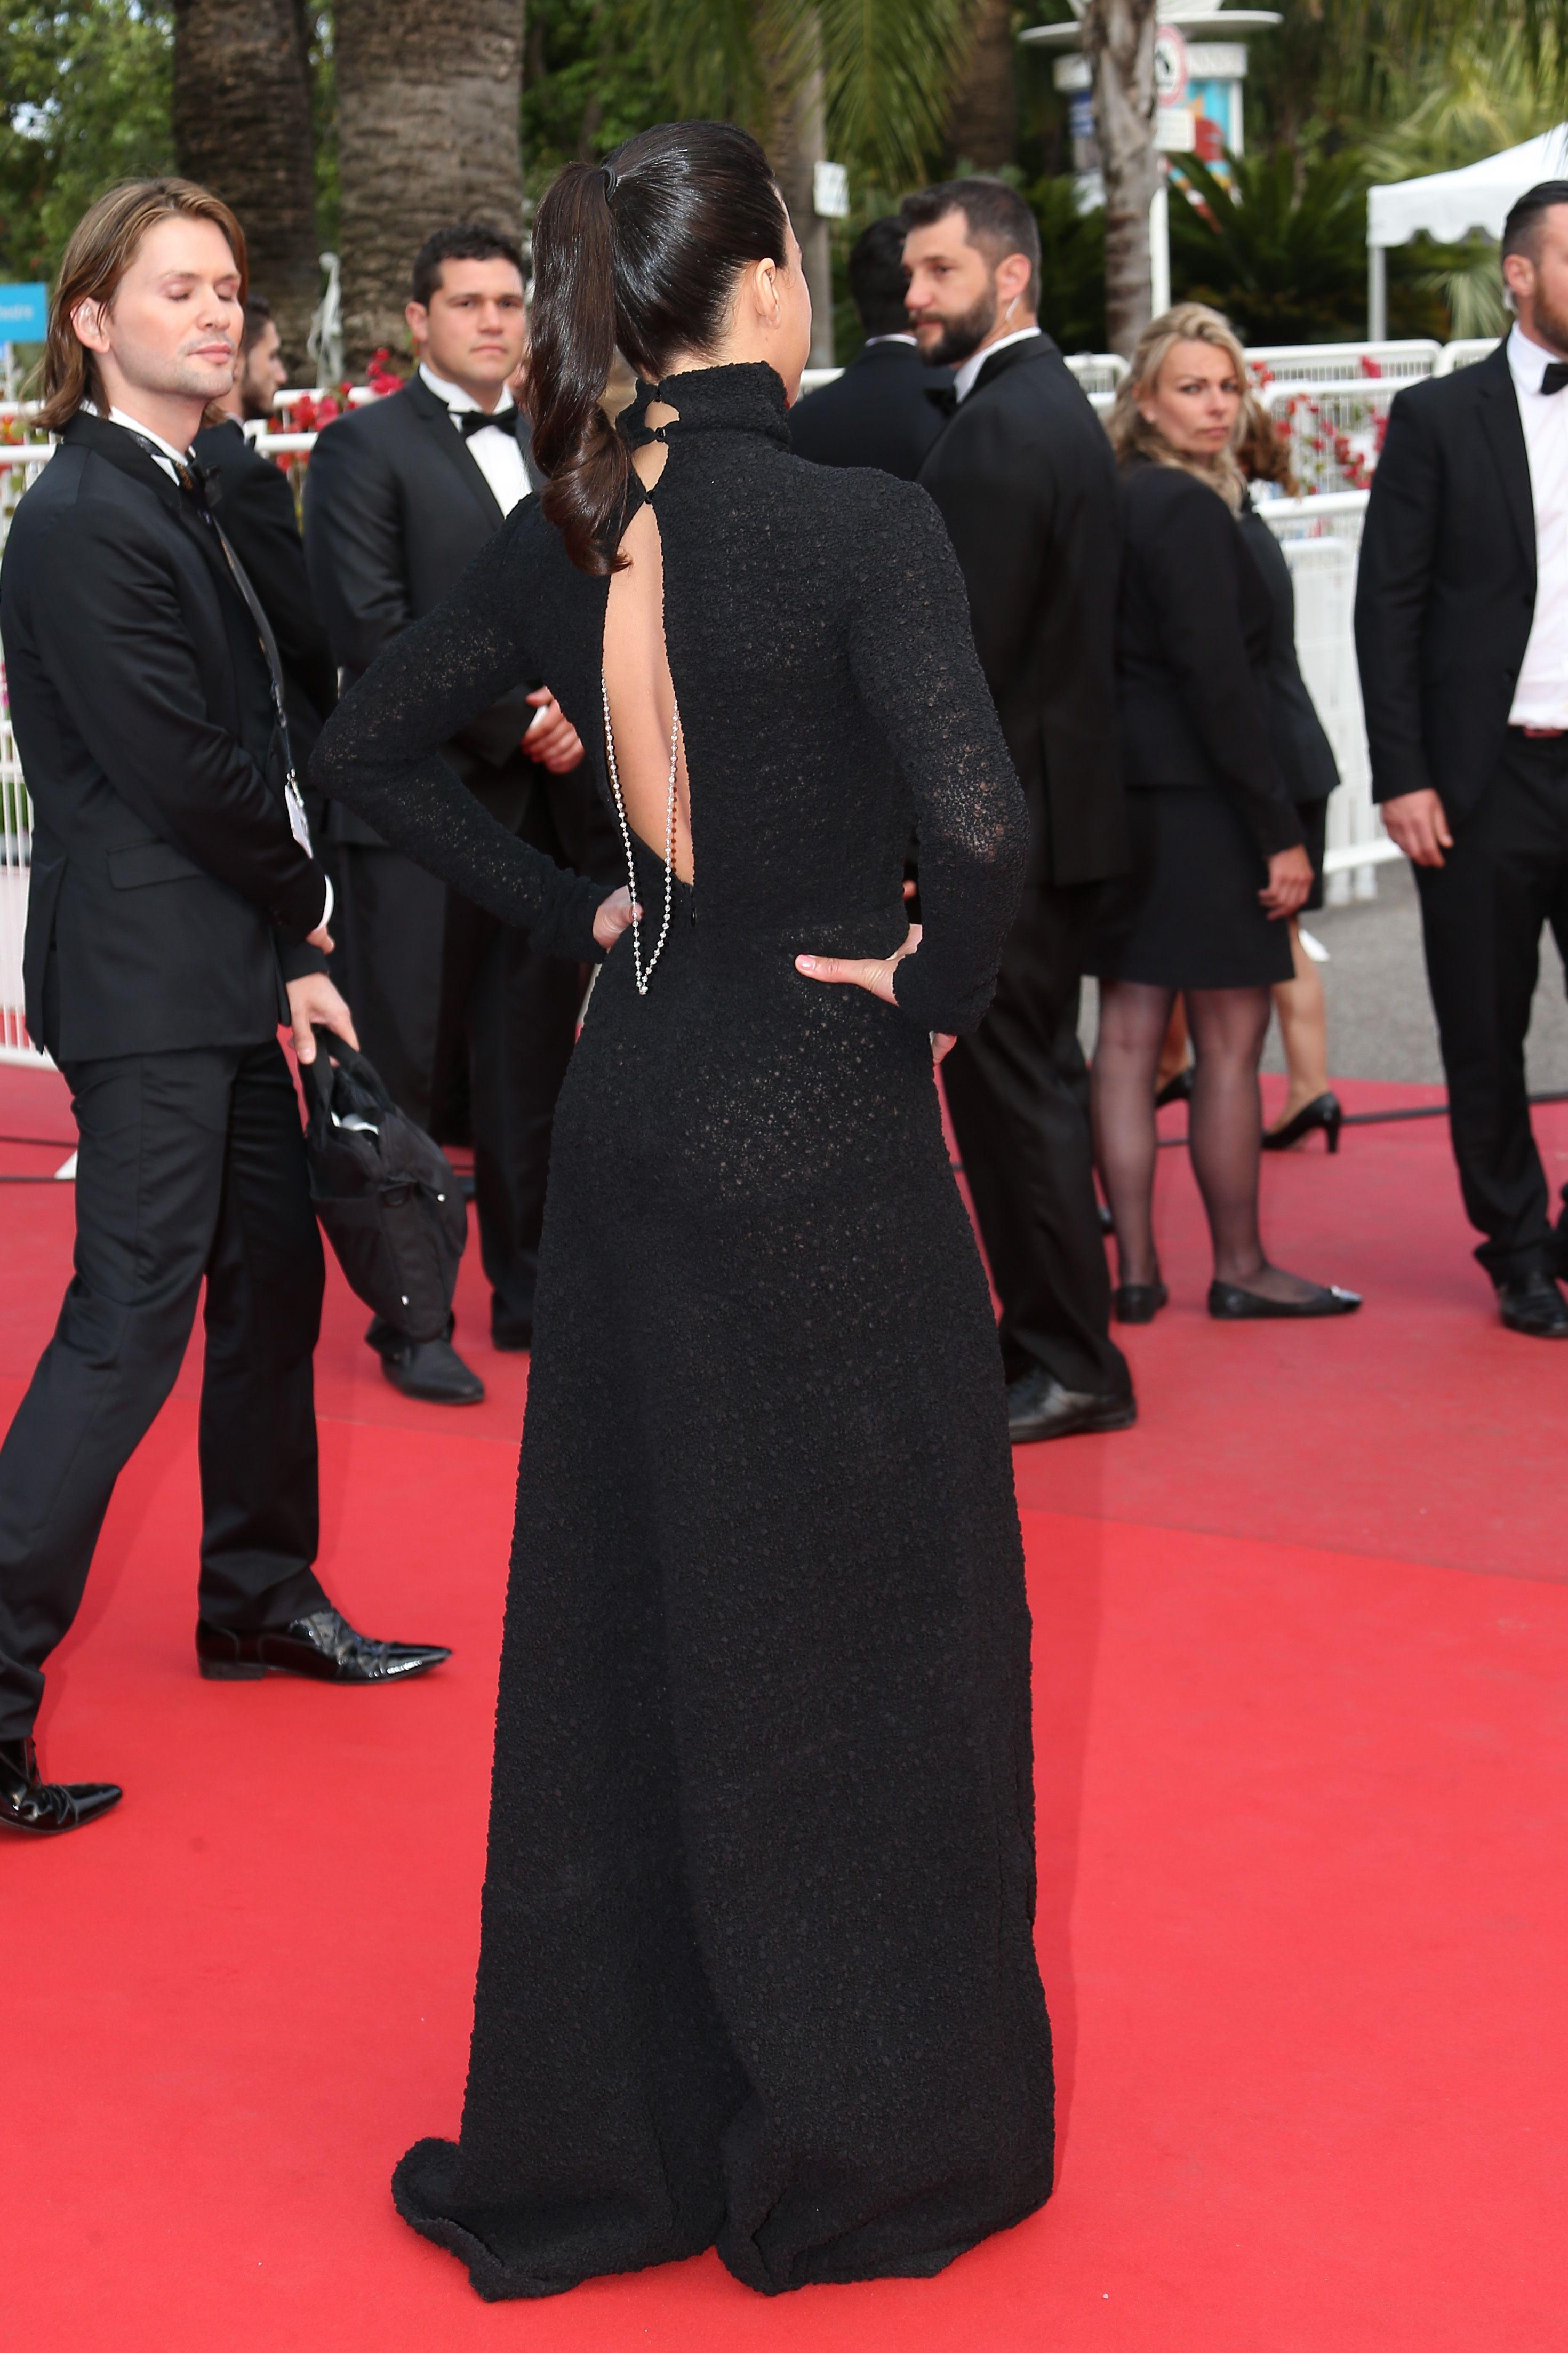 Rodriguez_Michelle_CannesClosing_05242015_GC_Celebutopia_037.jpg